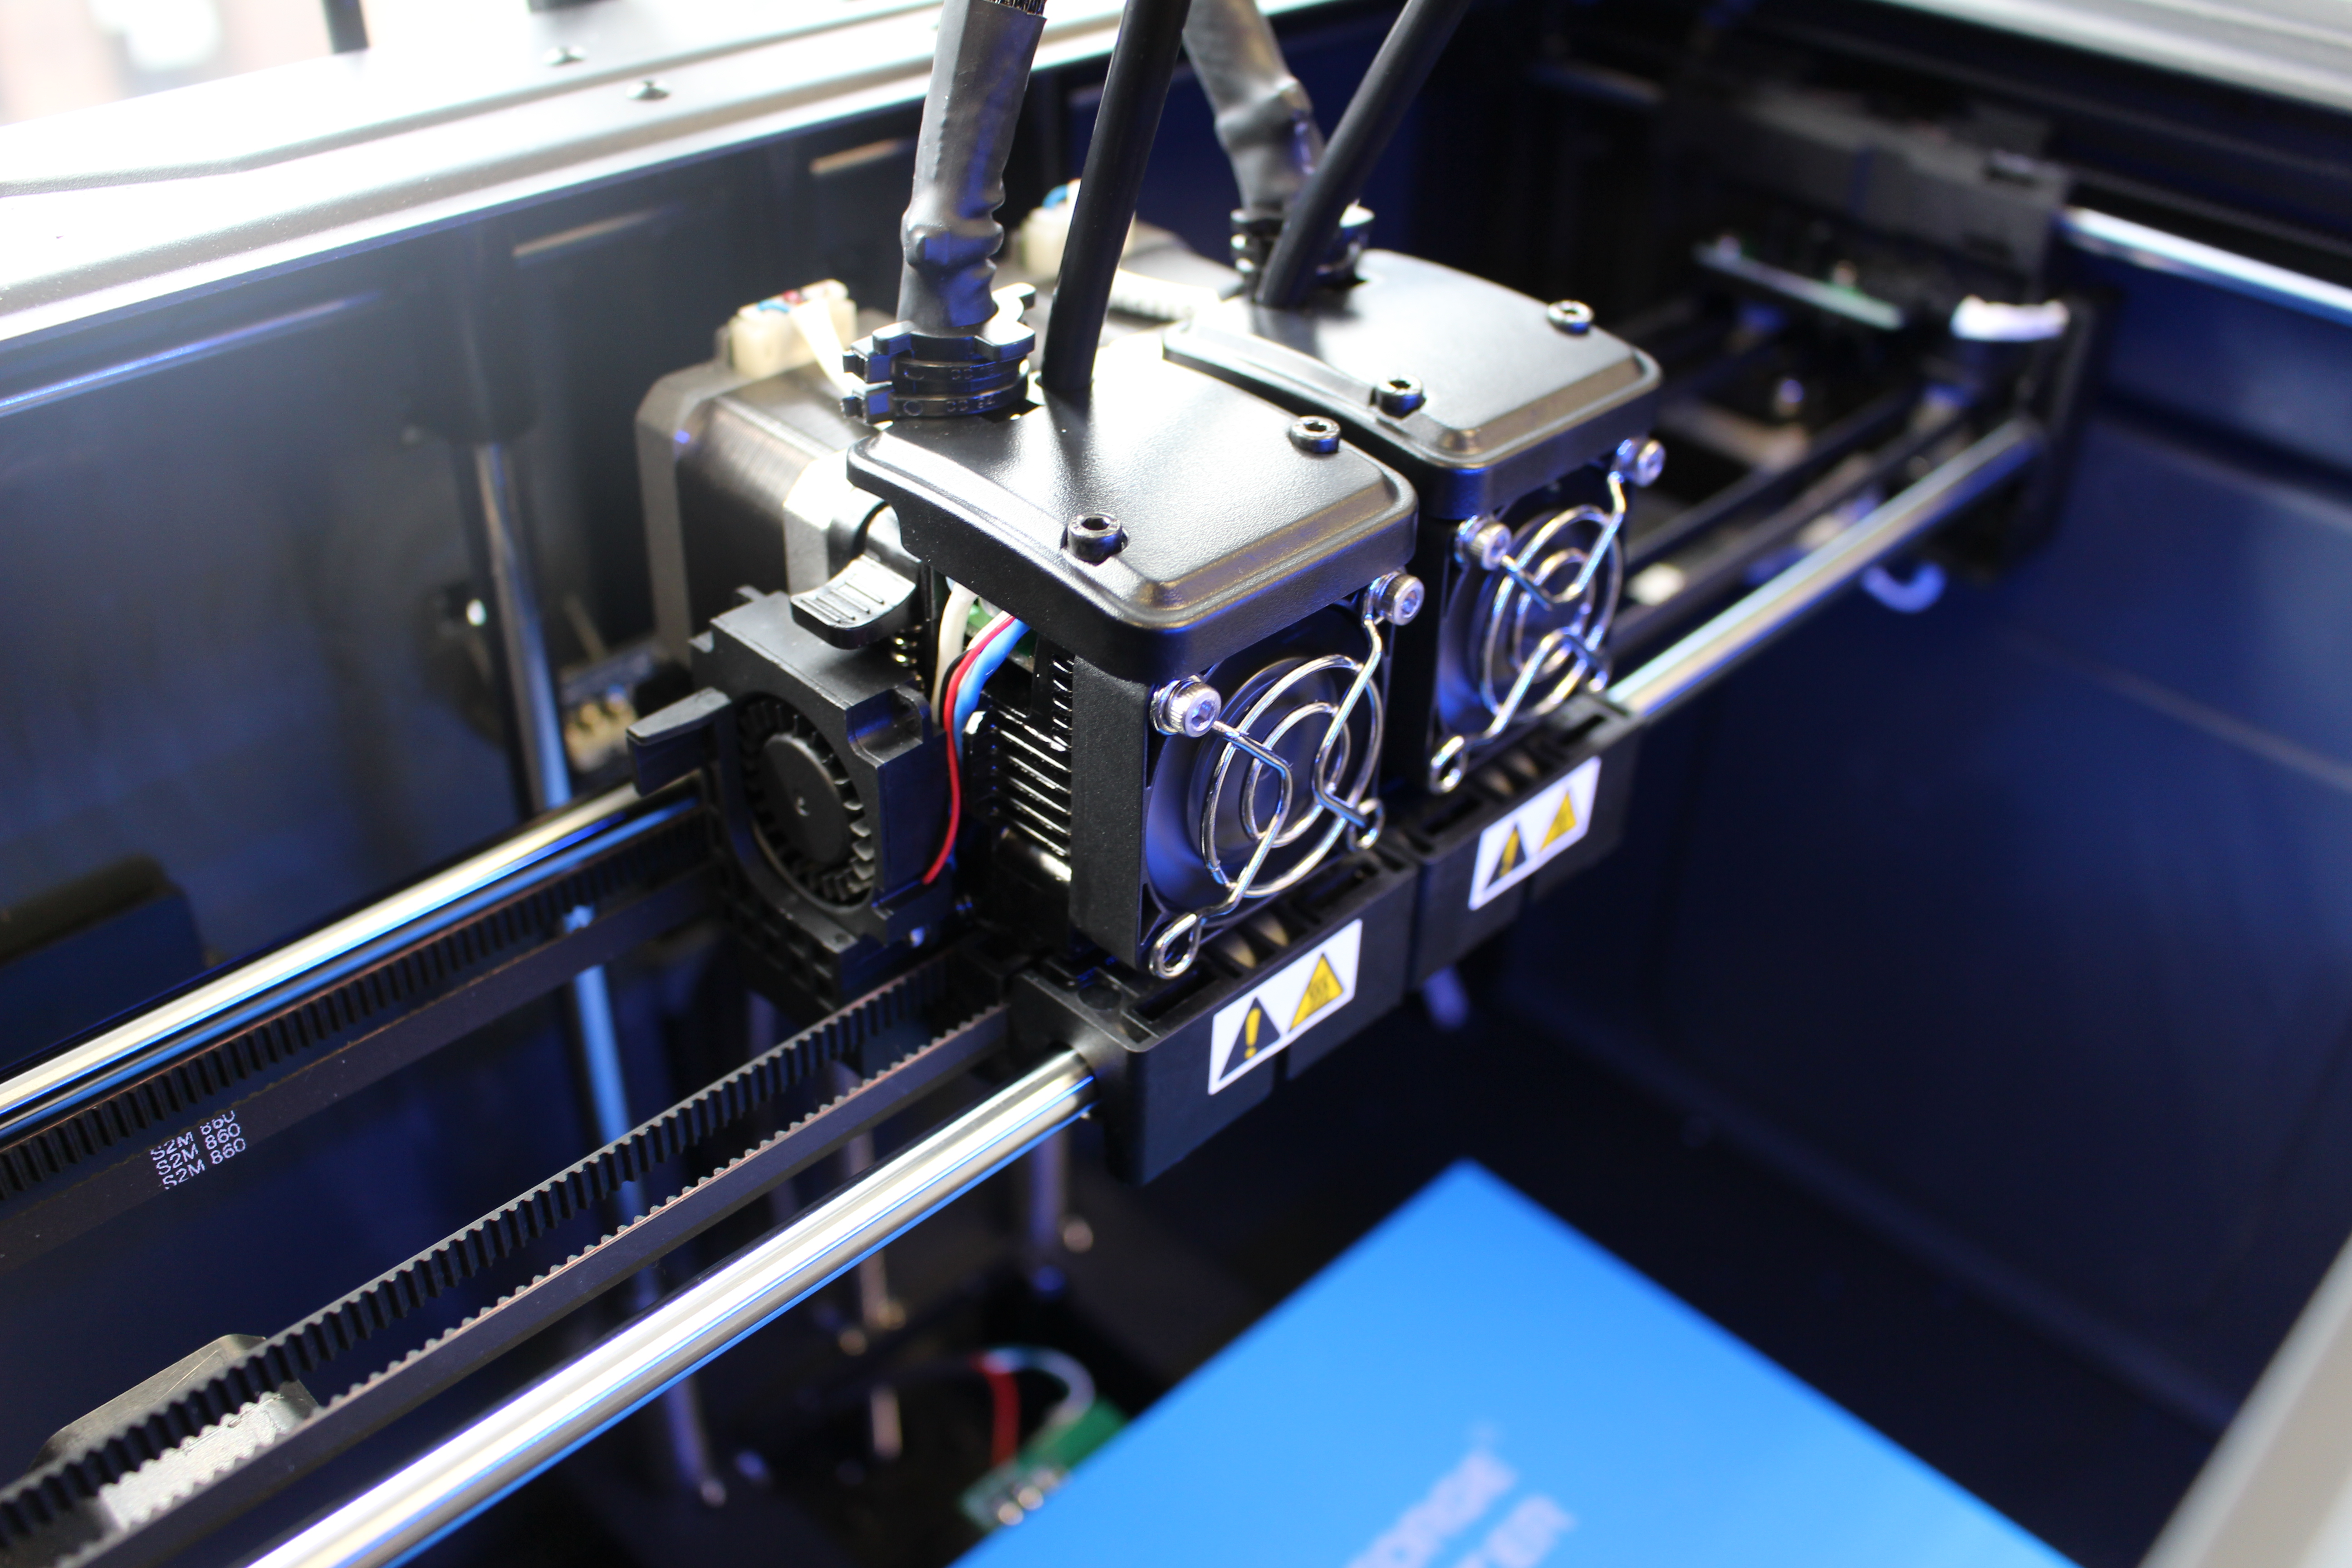 The Creator Pro 2's IDEX setup. Photo by 3D Printing Industry.